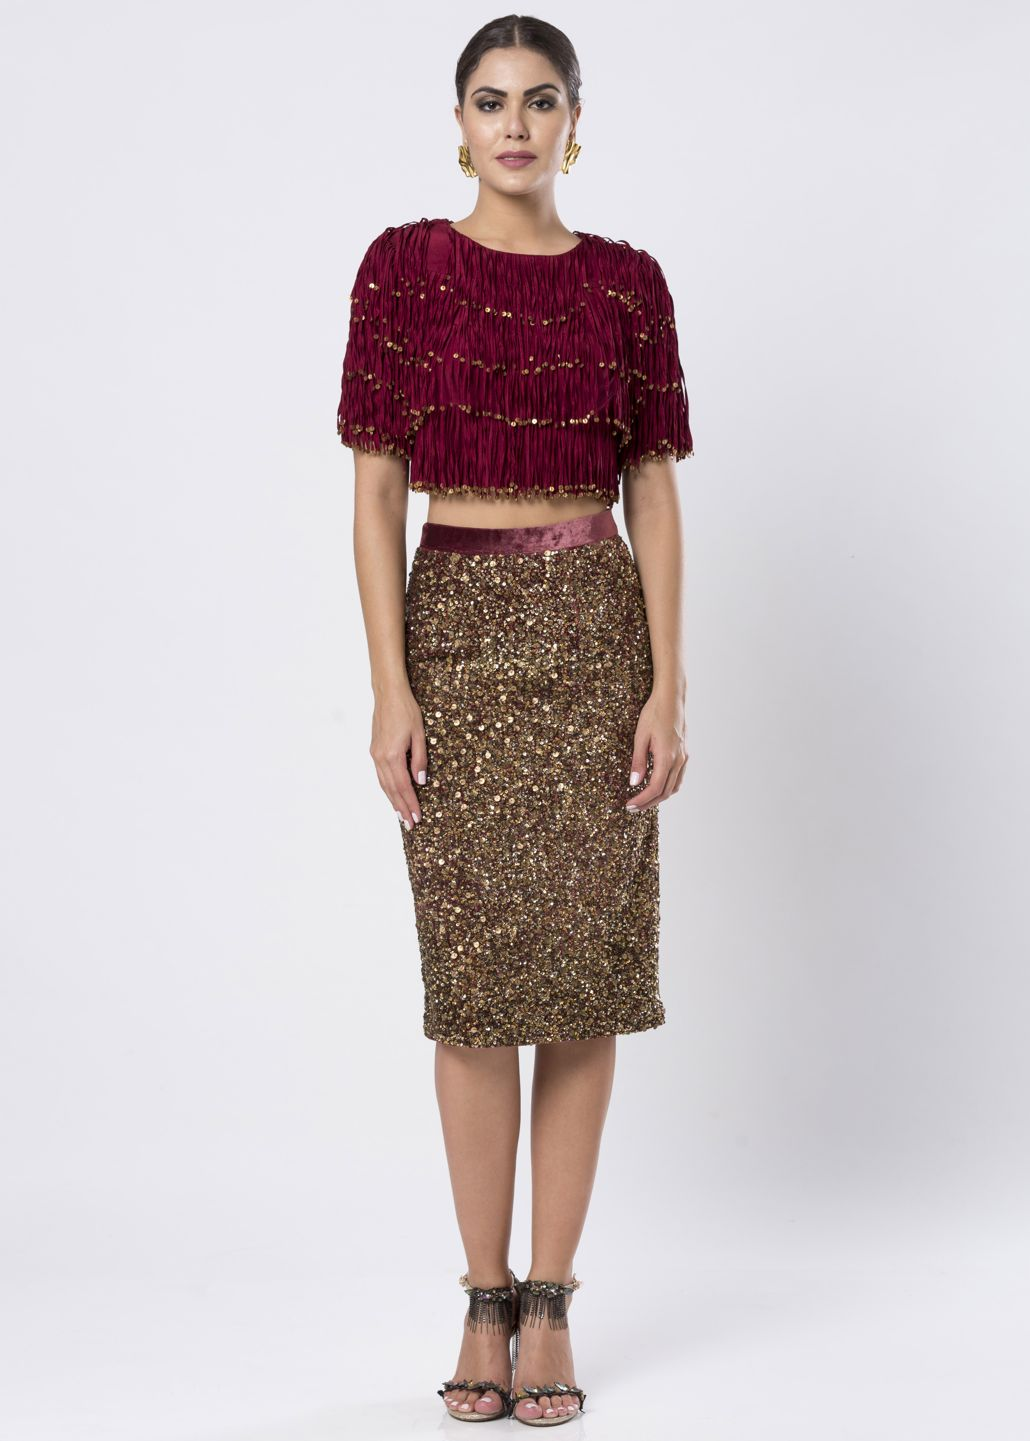 VELVET TOP & SEQUINED SKIRT